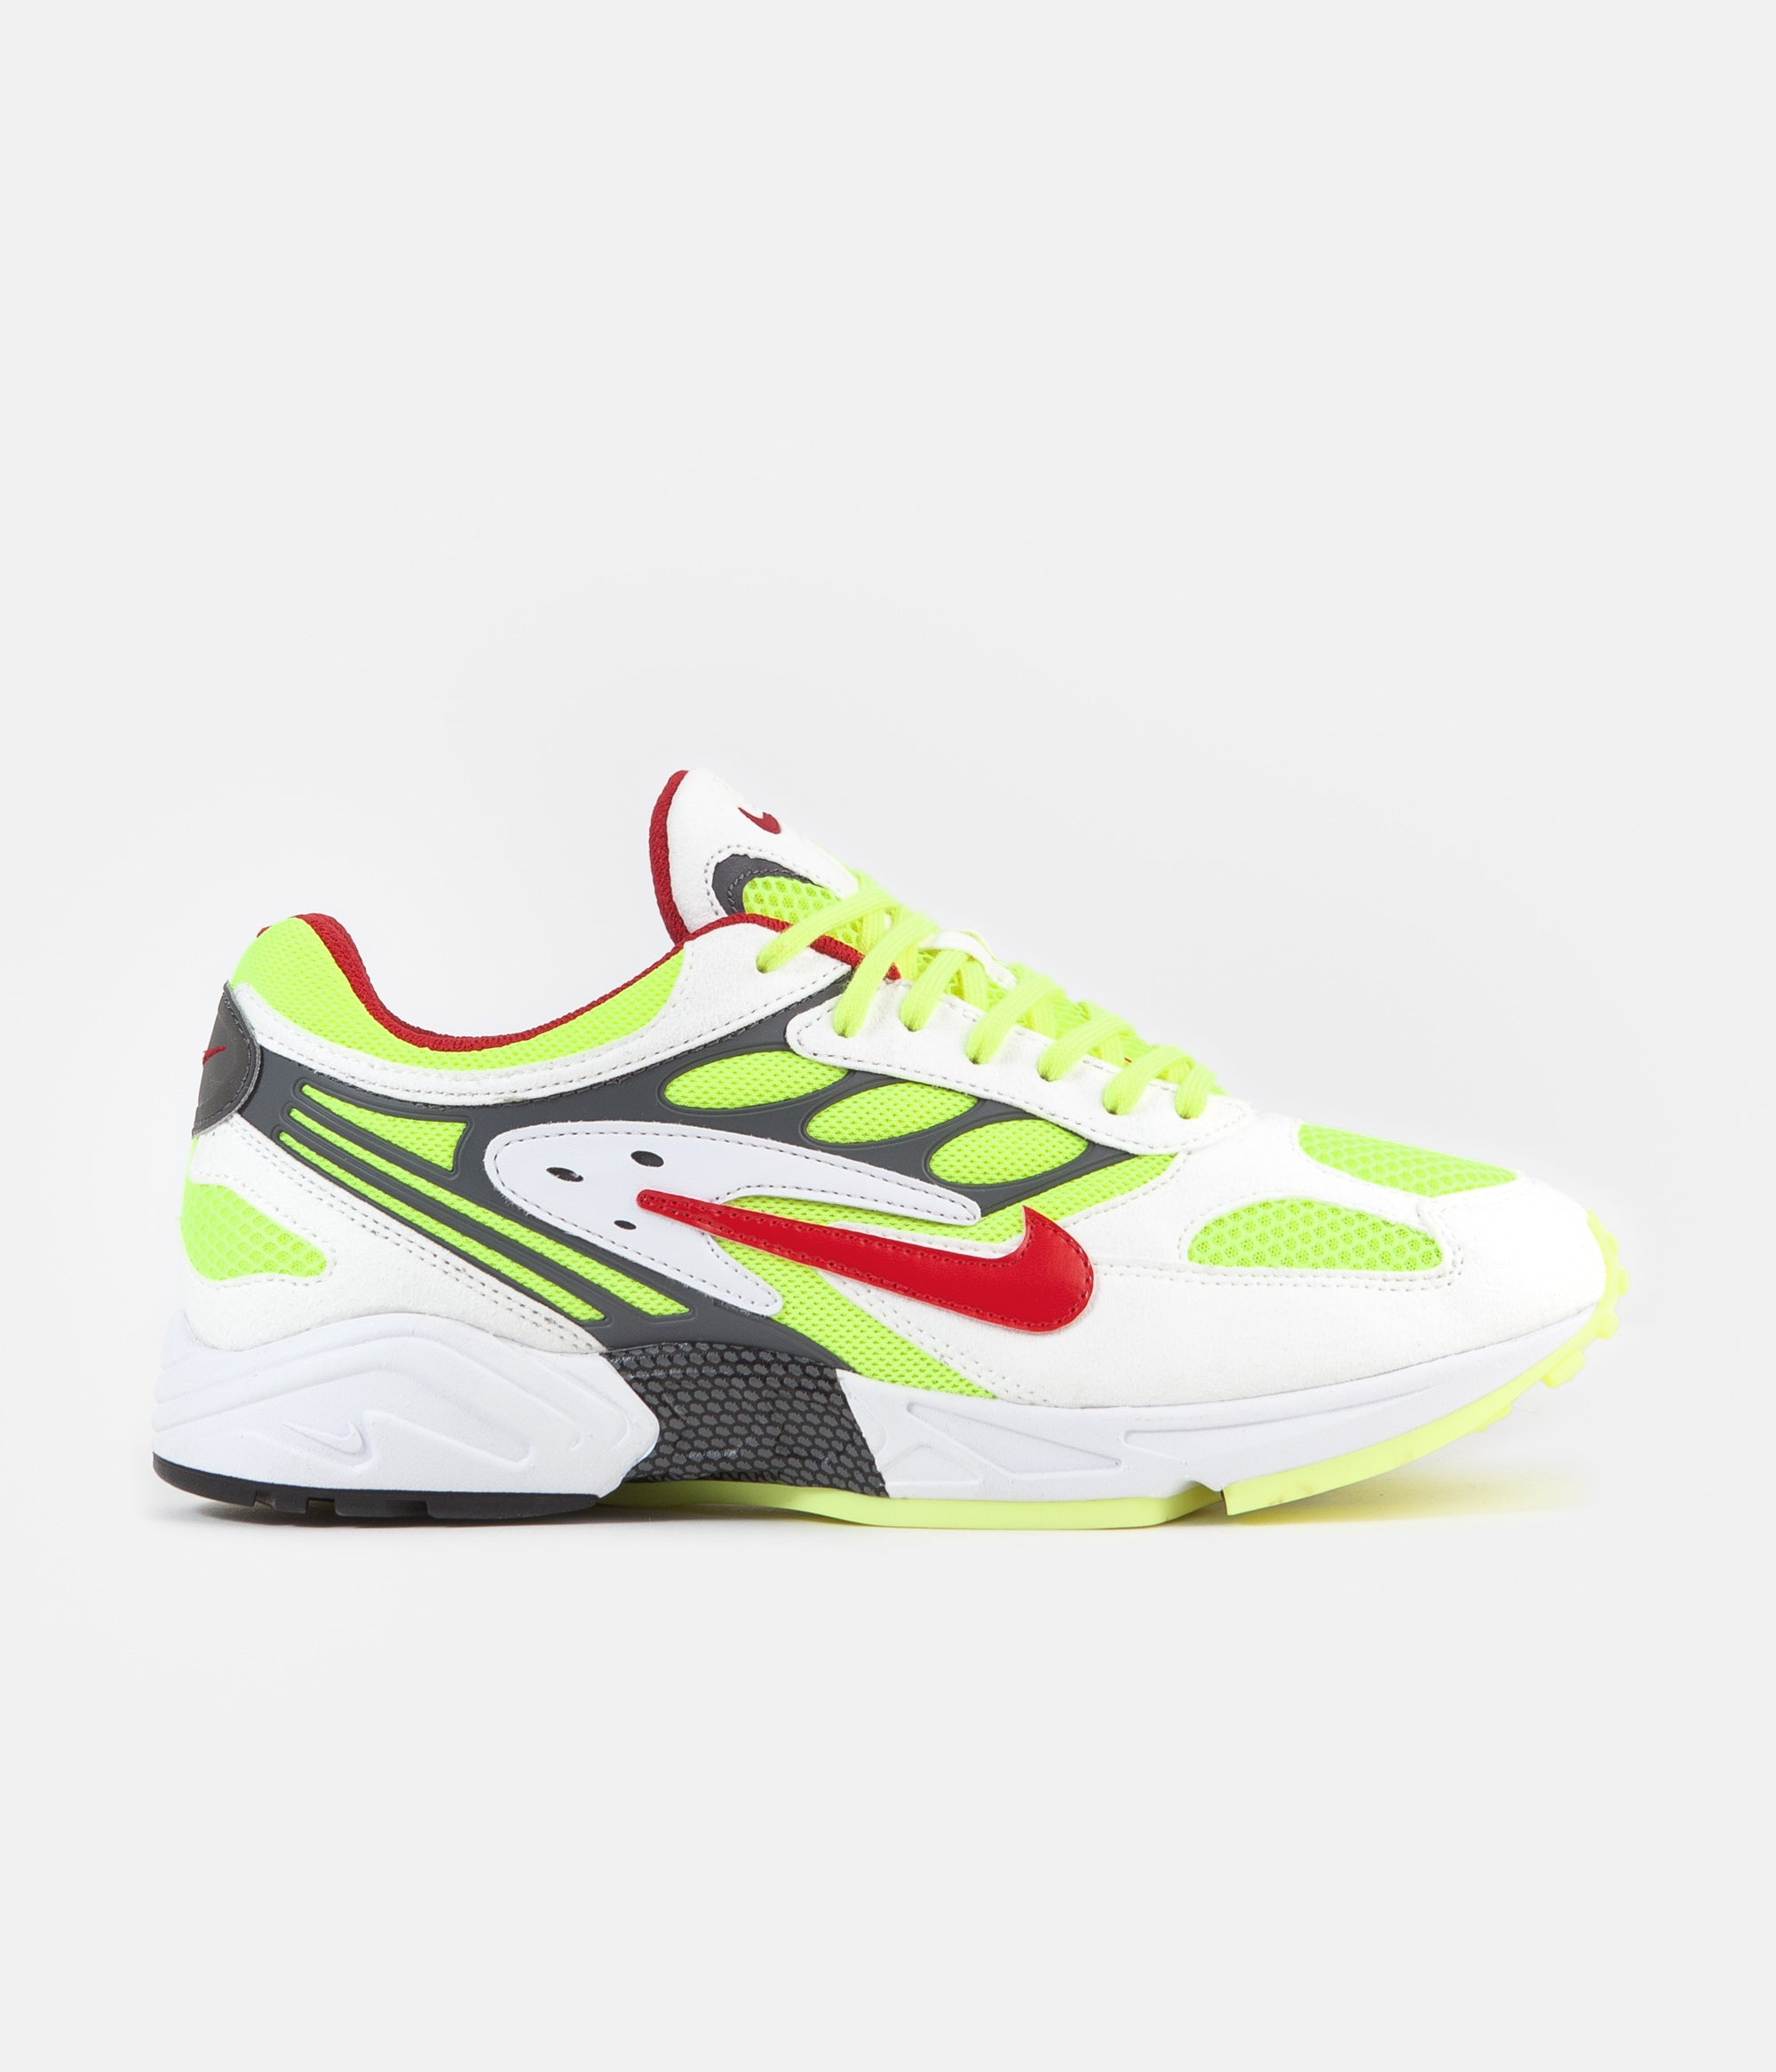 Nike Air Ghost Racer Shoes - White